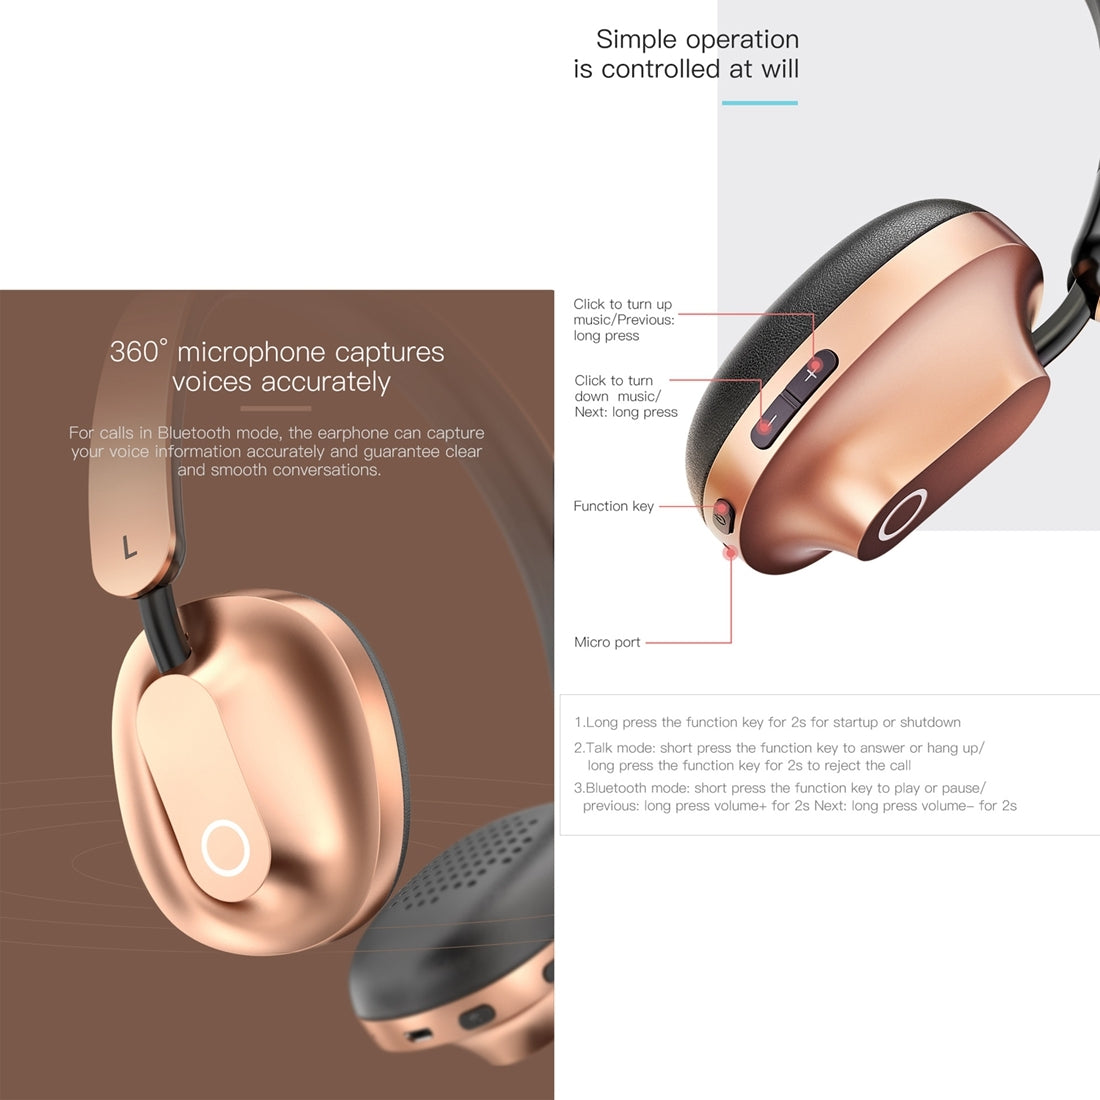 Baseus Encok D01 Headband Bluetooth / wired earphone dual mode Headphone Headset with Mic, for iPhone, iPad, iPod, Samsung, HTC, Sony, Huawei, Xiaomi and other Audio Devices(Tarnish)